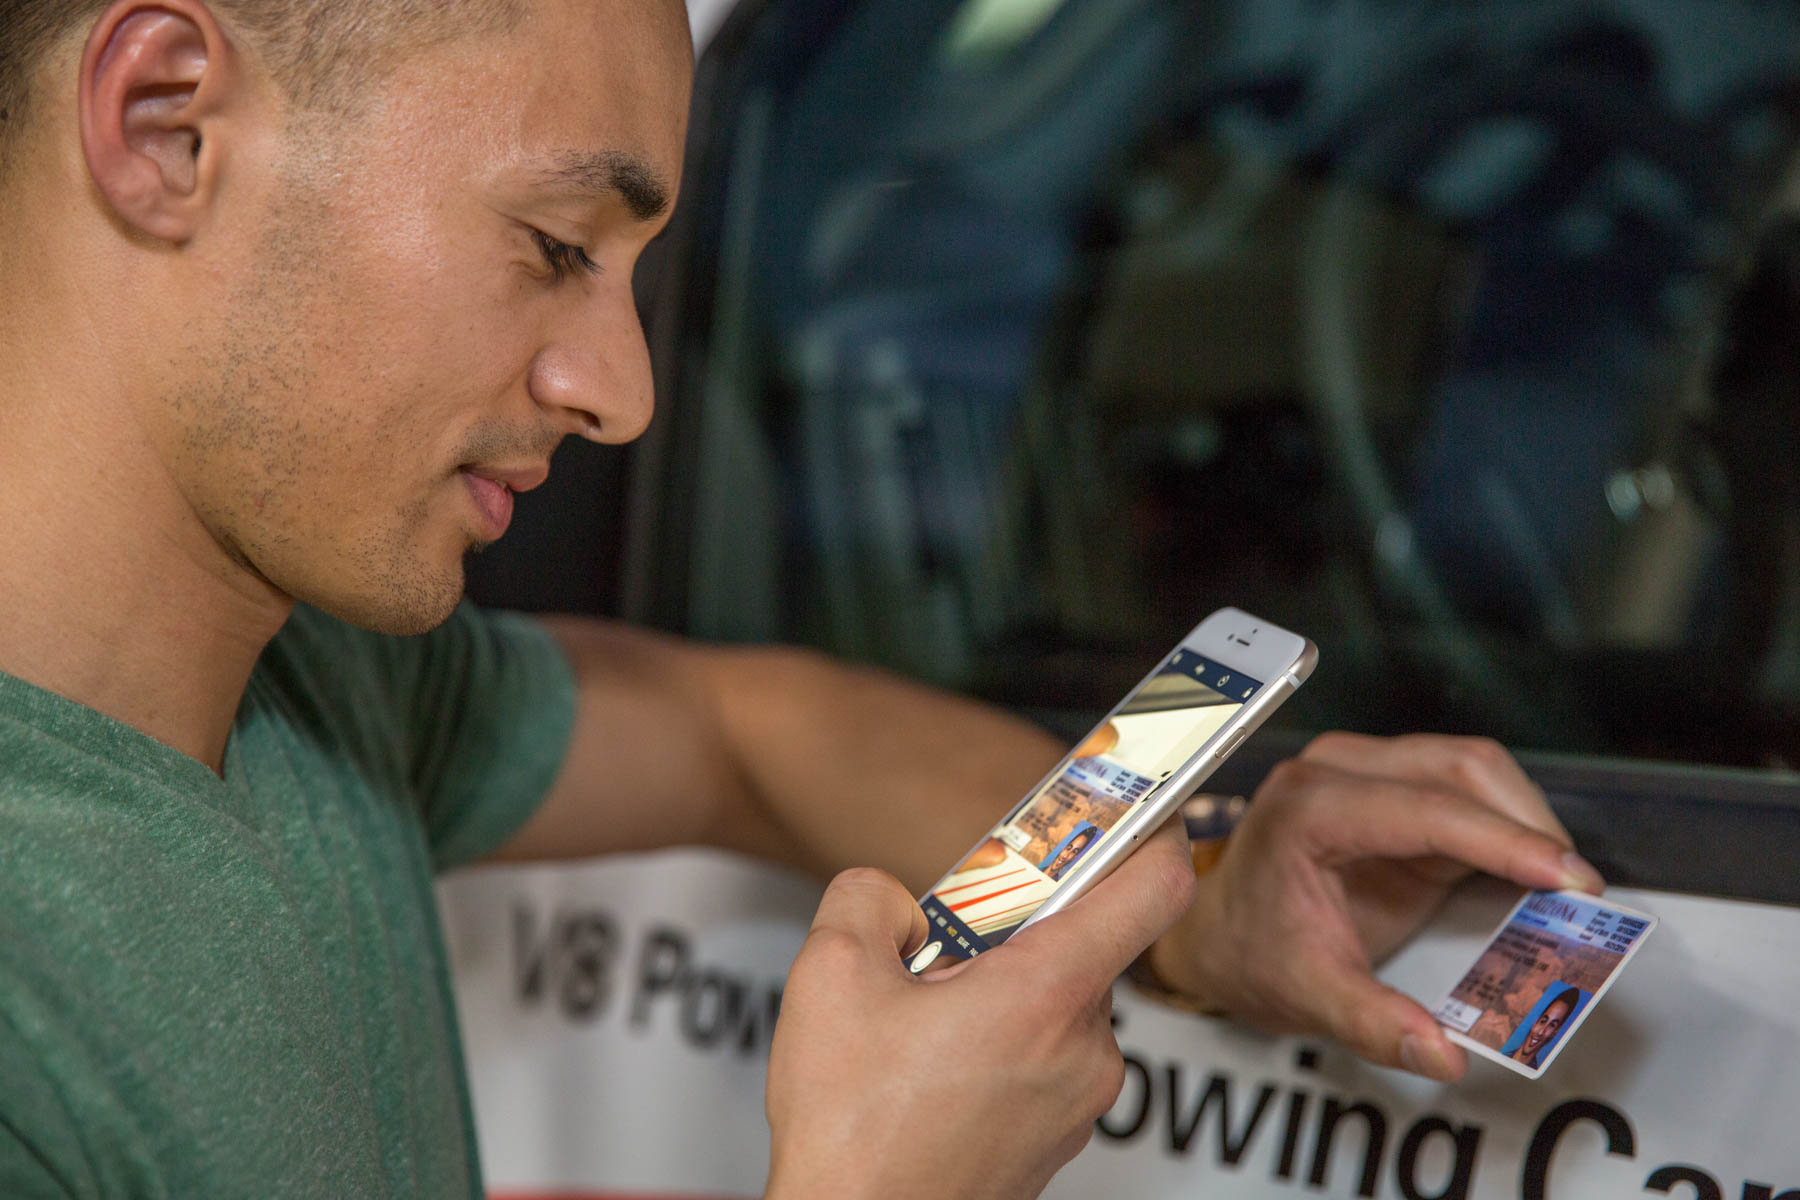 You don't have to be a professional photographer to use U-Haul Trucks Share 24/7. If you can snap a clear picture of your driver's license and take a decent selfie on site, you earn a passing grade.